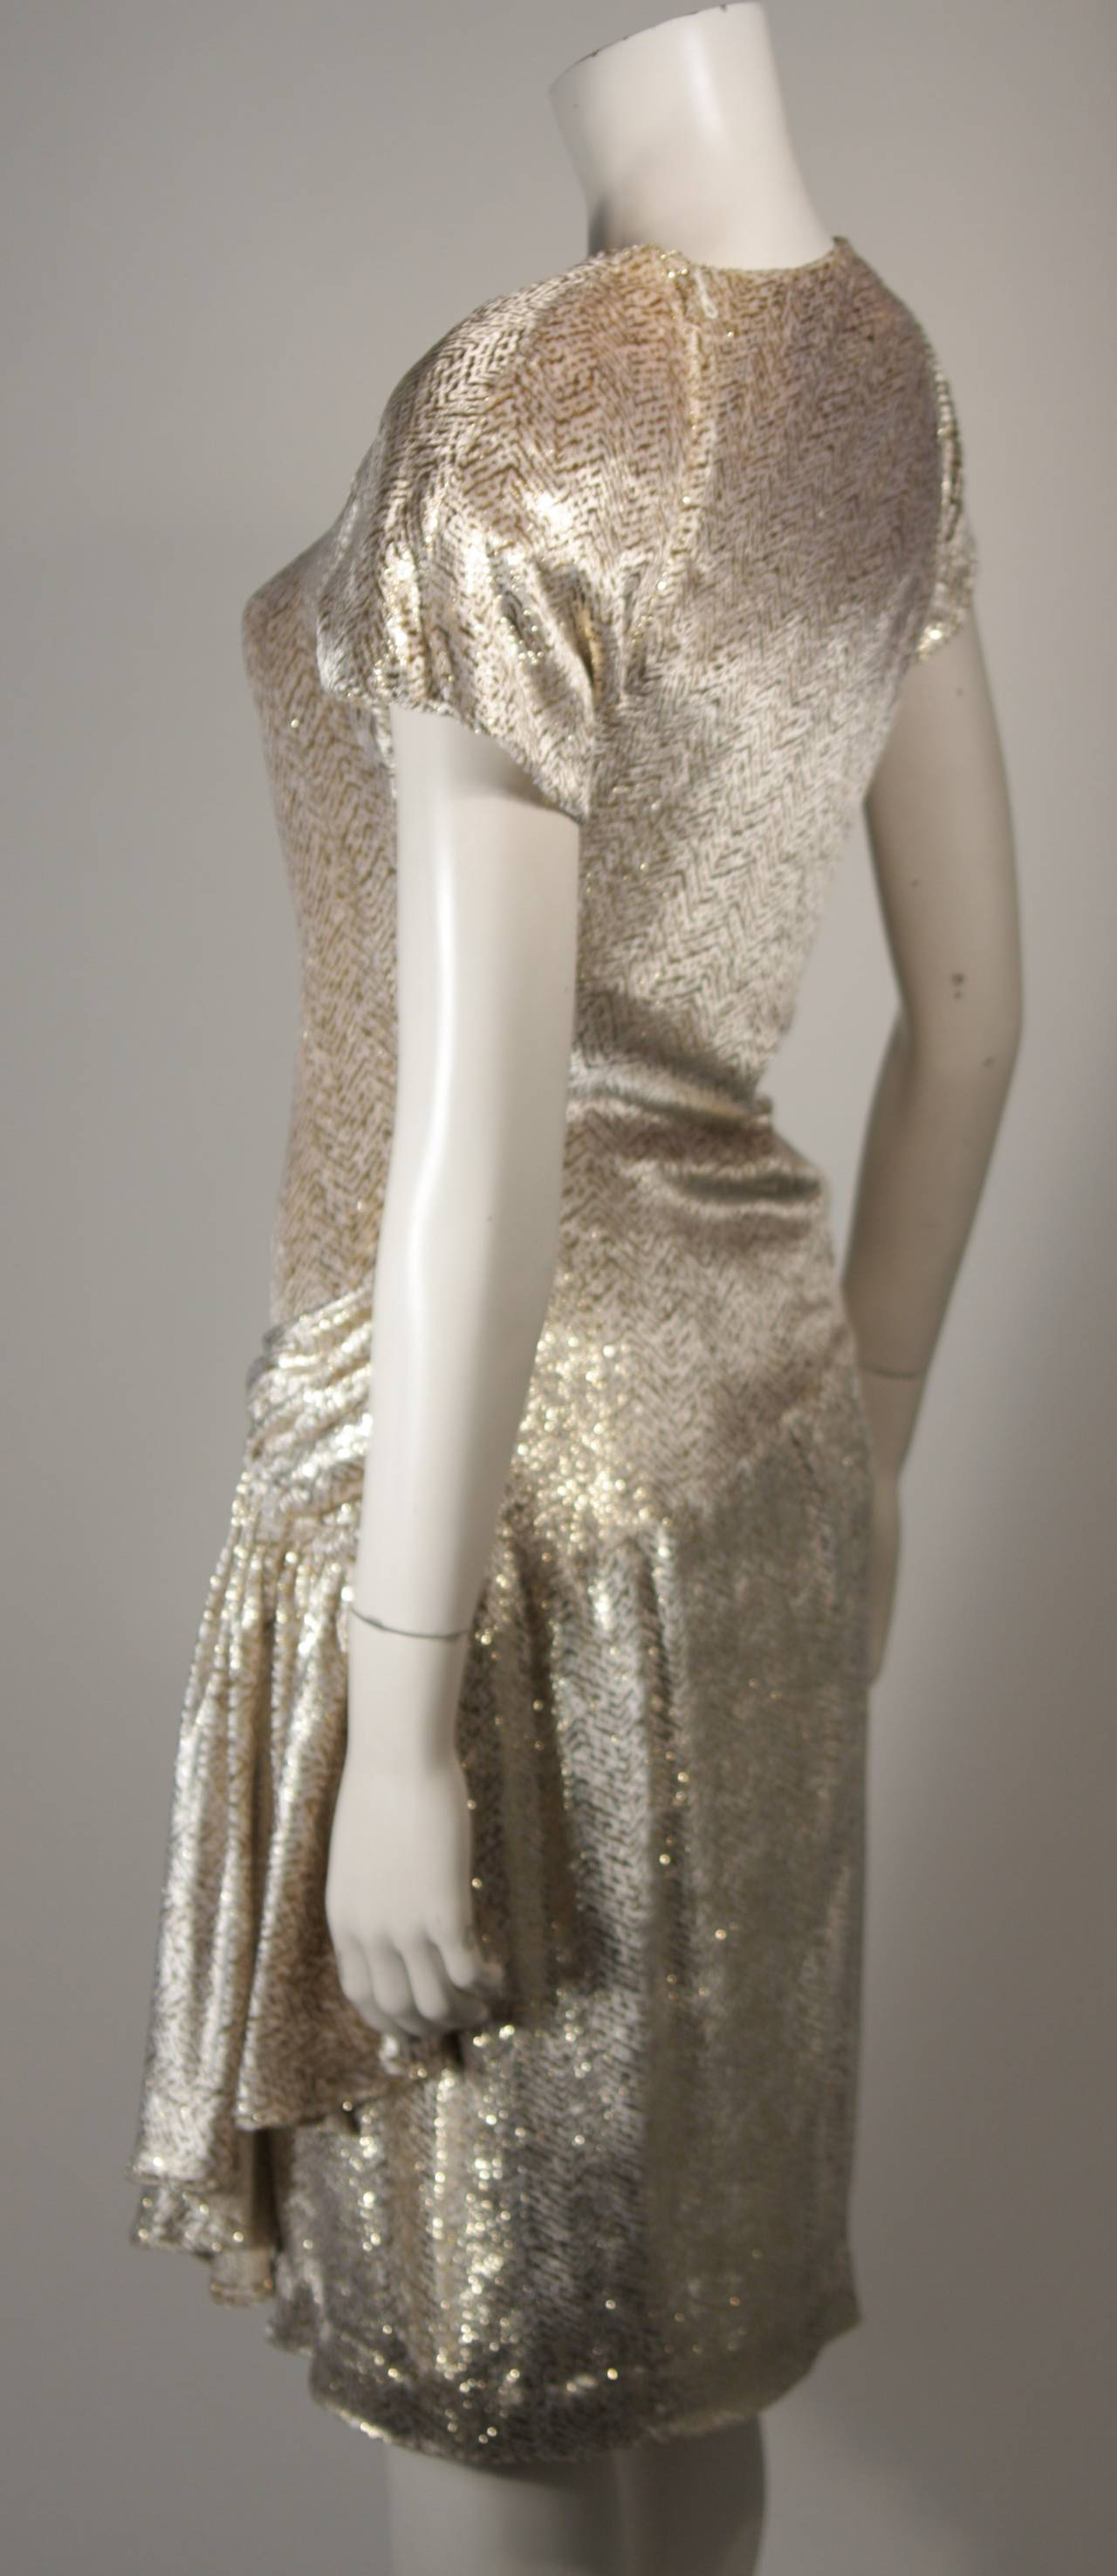 Vicky Tiel Ivory and Gold Velvet Texture Cocktail Dress Size 38 7